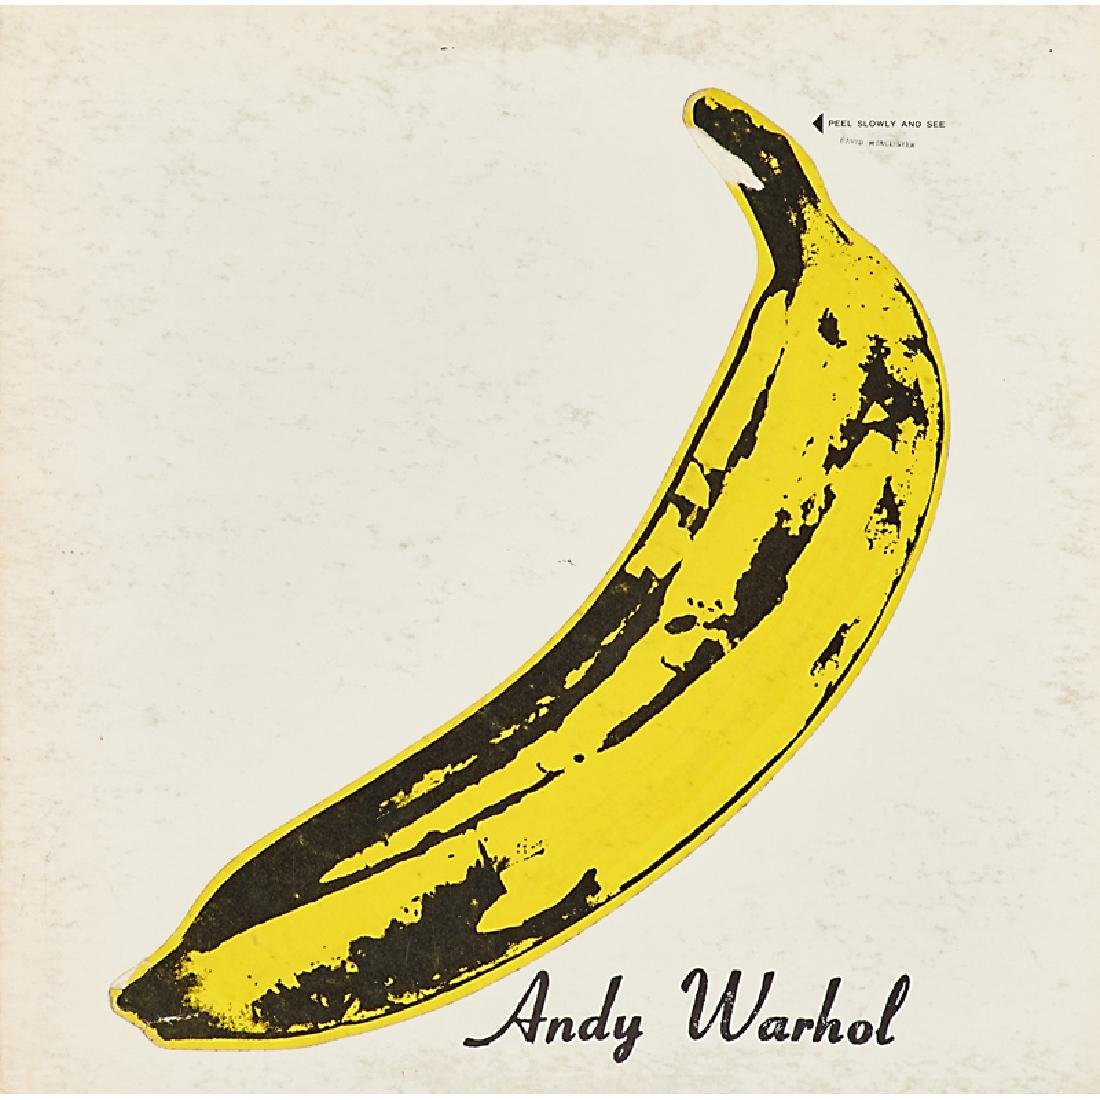 THE VELVET UNDERGROUND LP